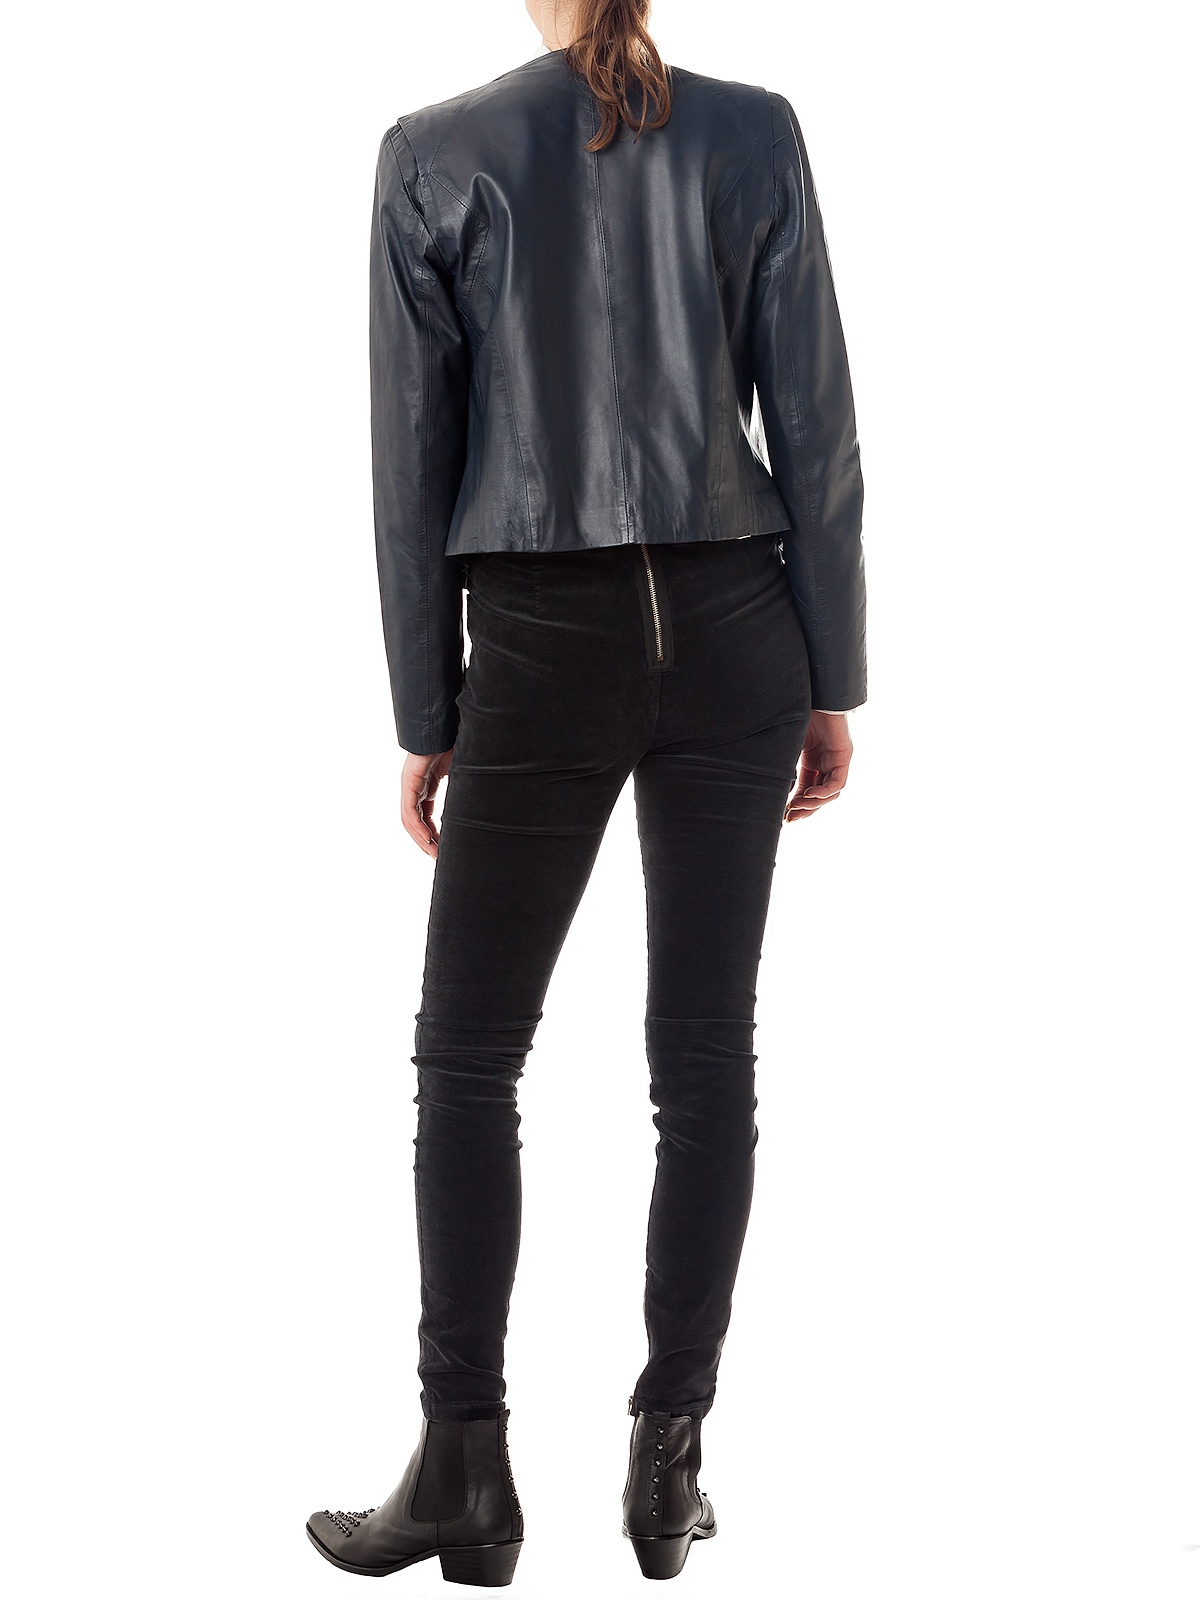 MIRA BLACK PERFECTO JACKET | GIRISSIMA.COM - Collectible fashion to love and to last